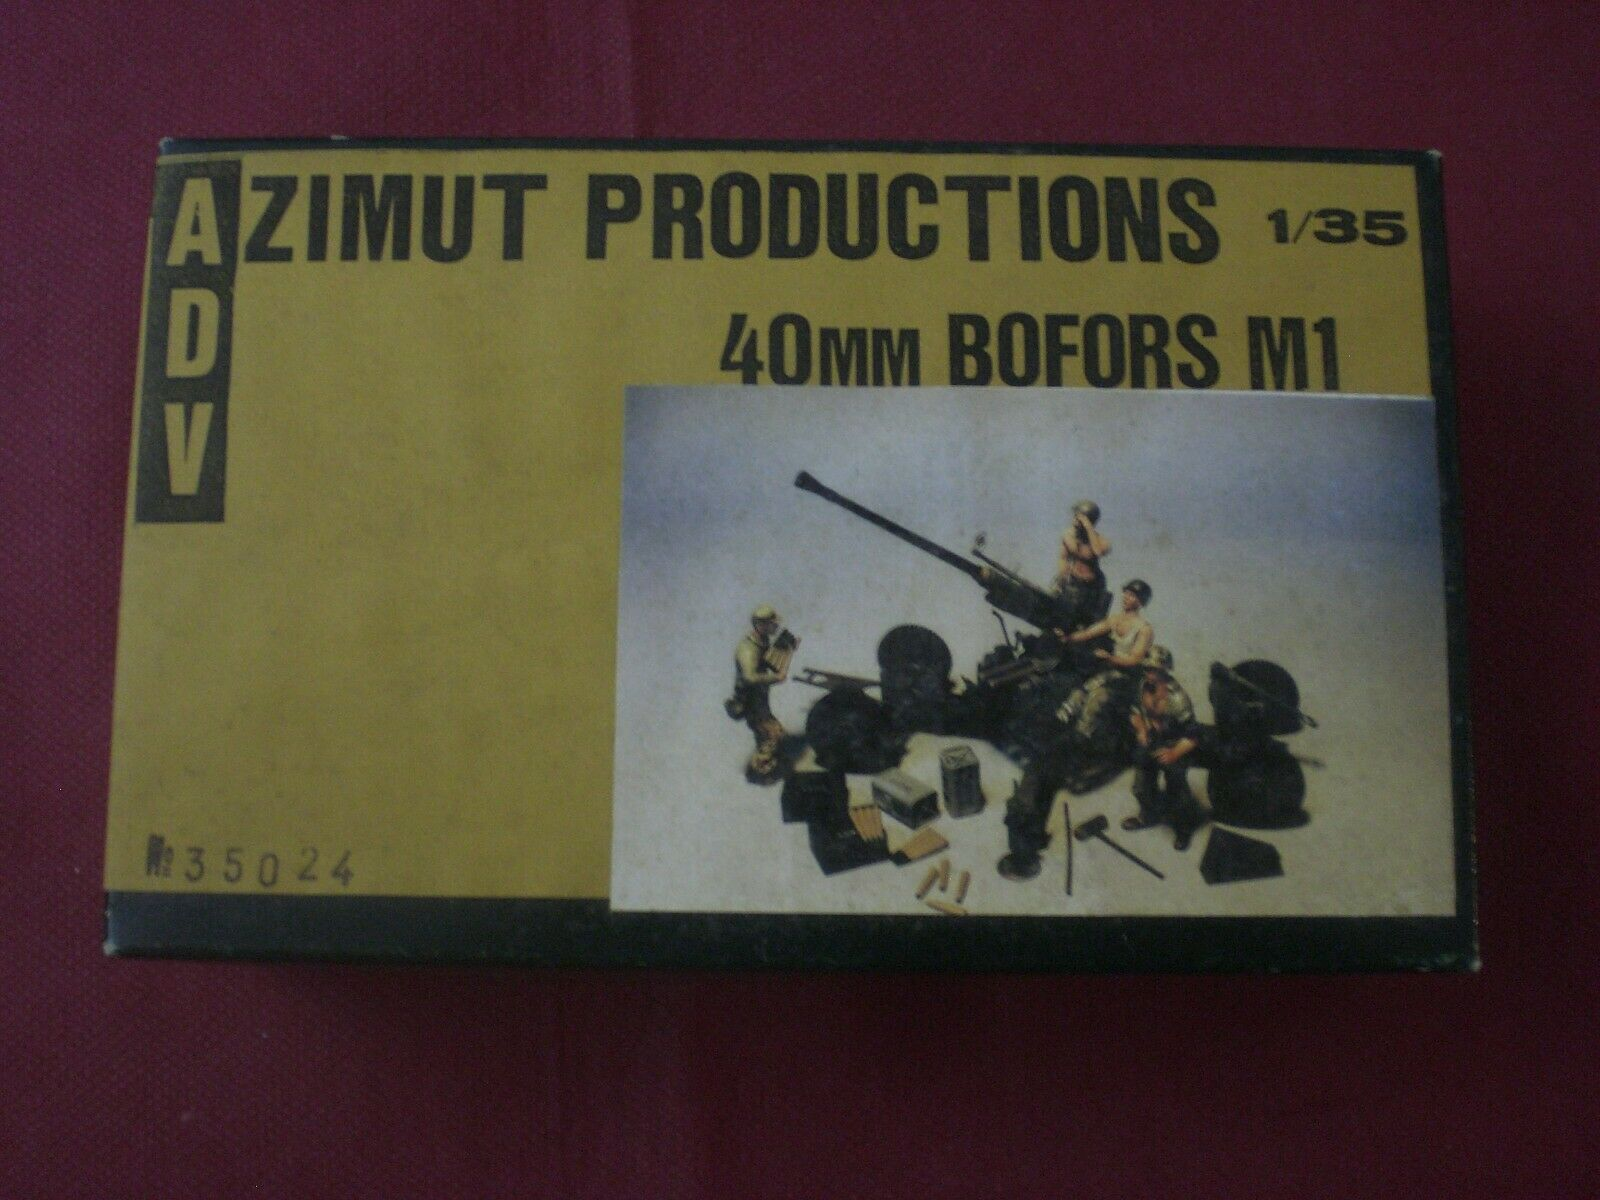 40mm Bofors m1-Scale 1 35 ADV azimuth Productions